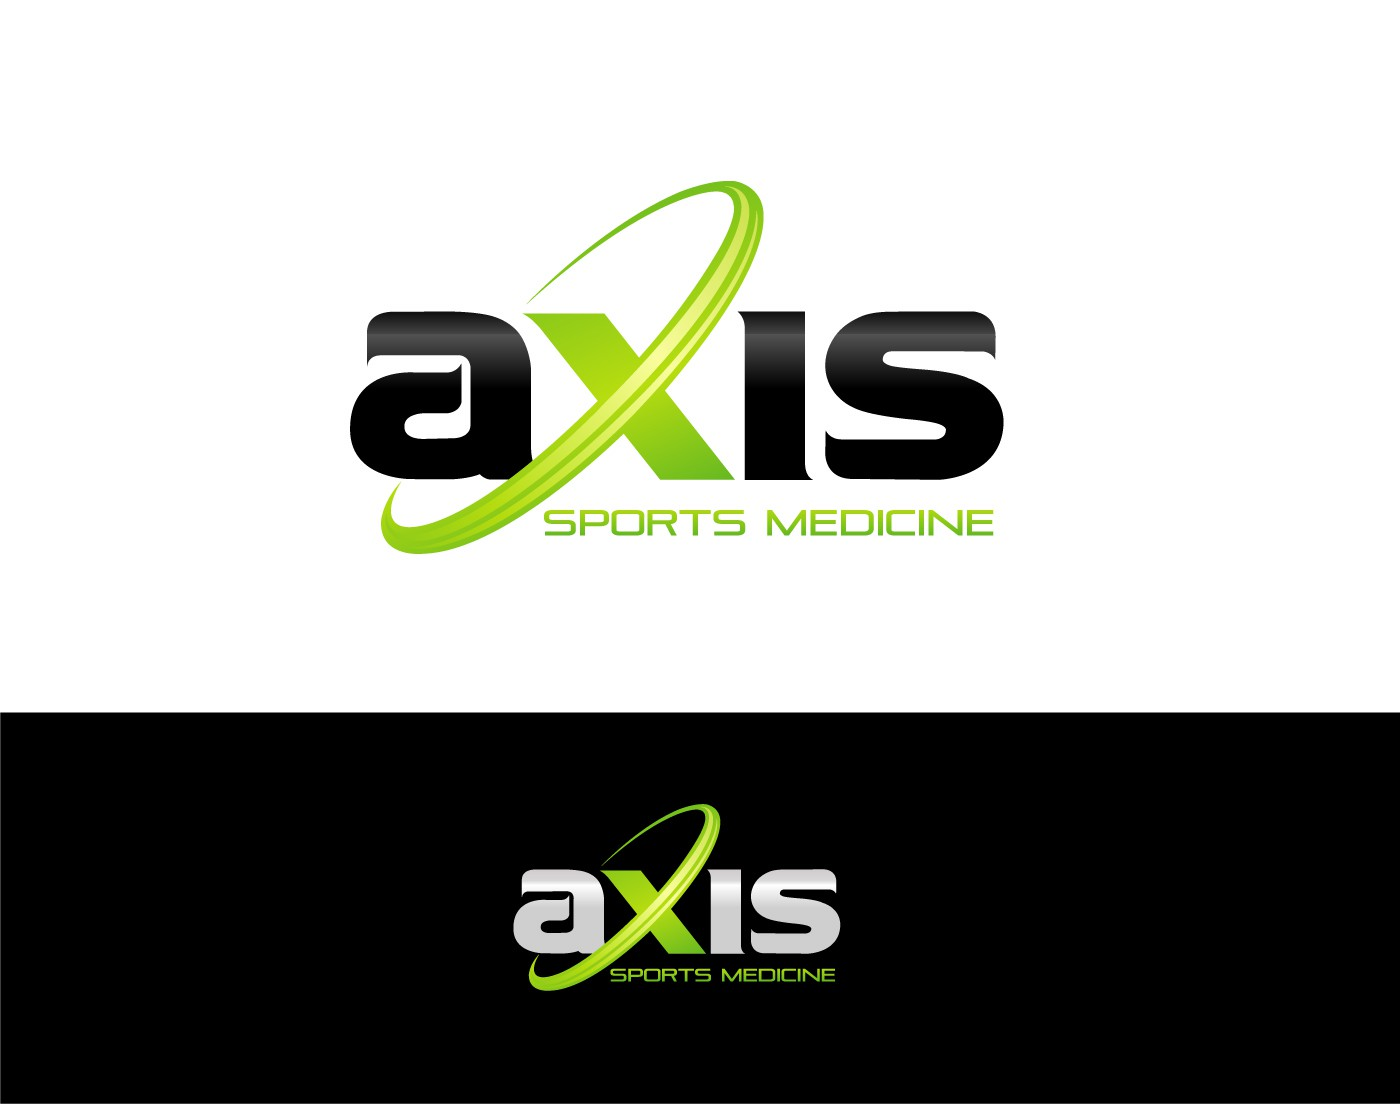 Help Axis Sports Medicine with a new logo